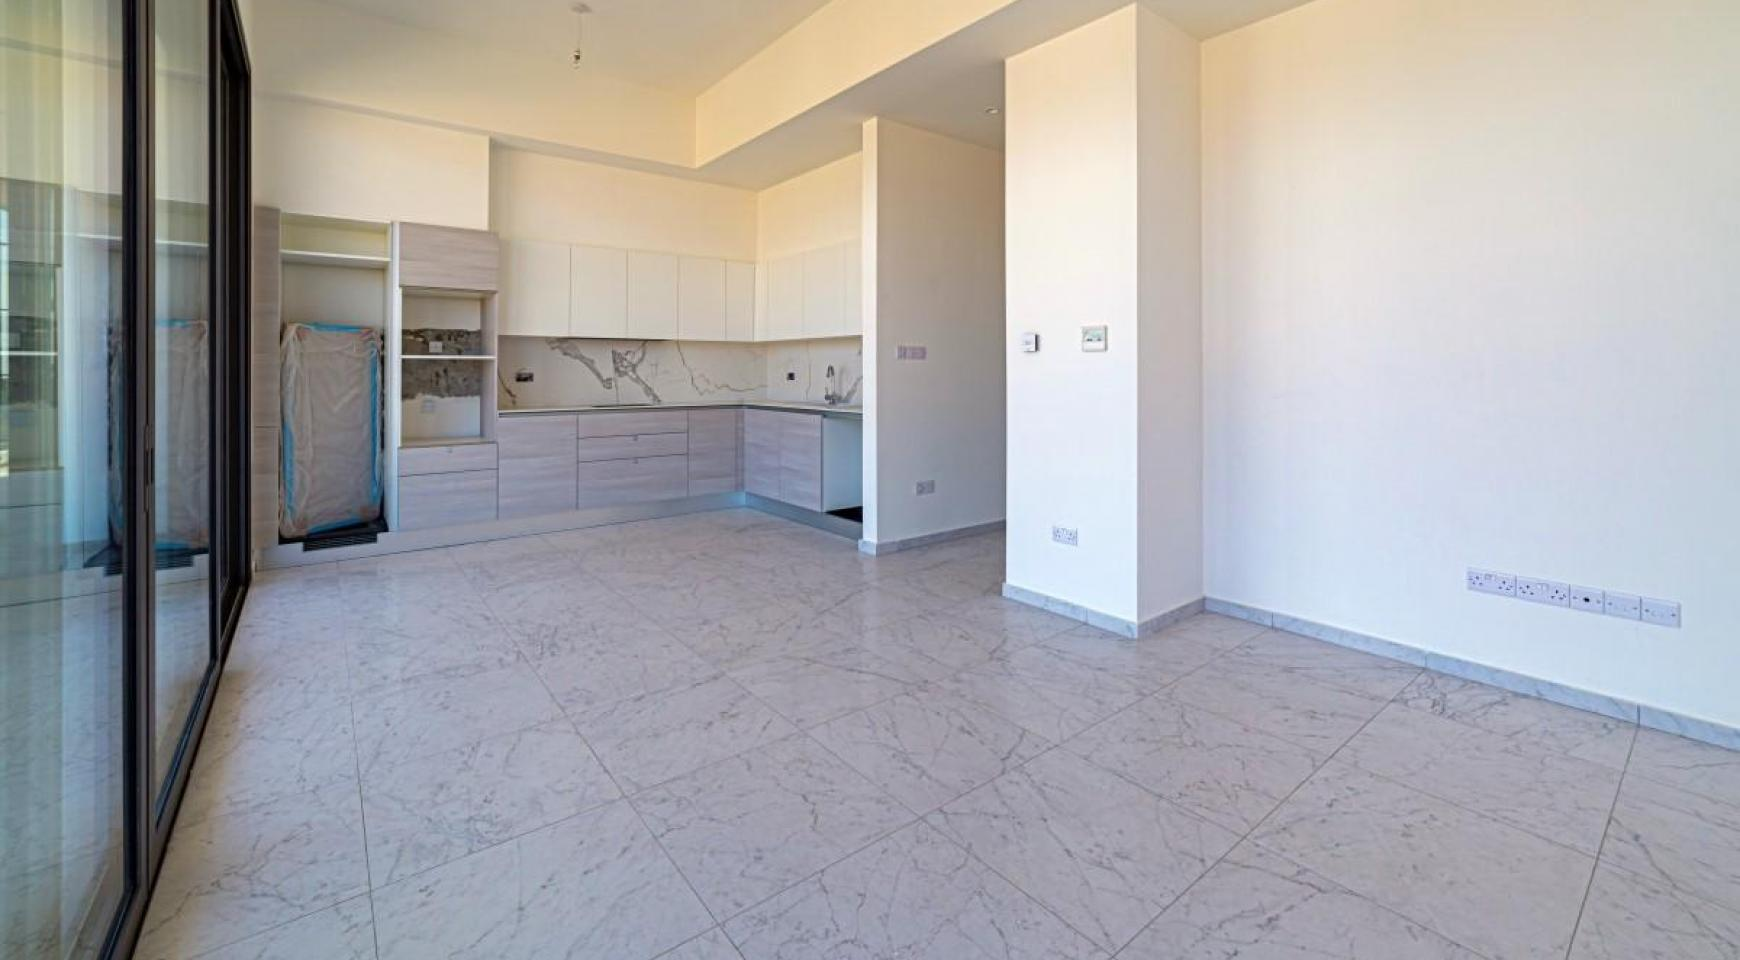 Urban City Residences, Block A. New Spacious 2 Bedroom Apartment 202 in the City Centre - 8